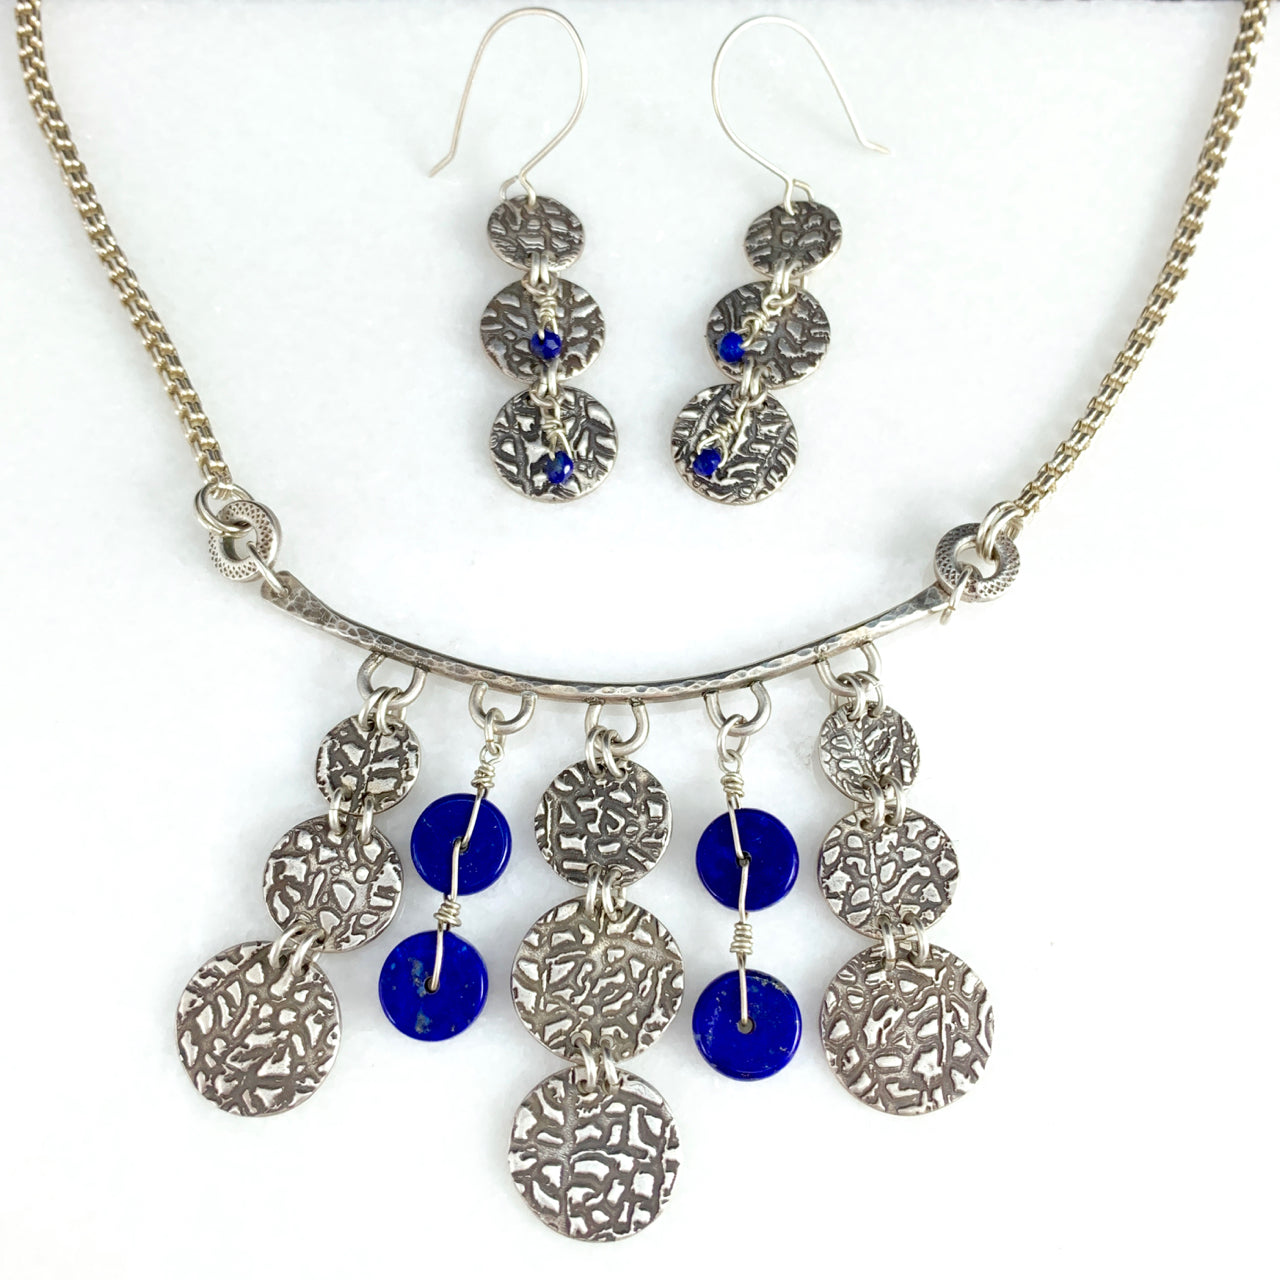 SOLD-Tribal Armament Pendant Necklace & Earrings